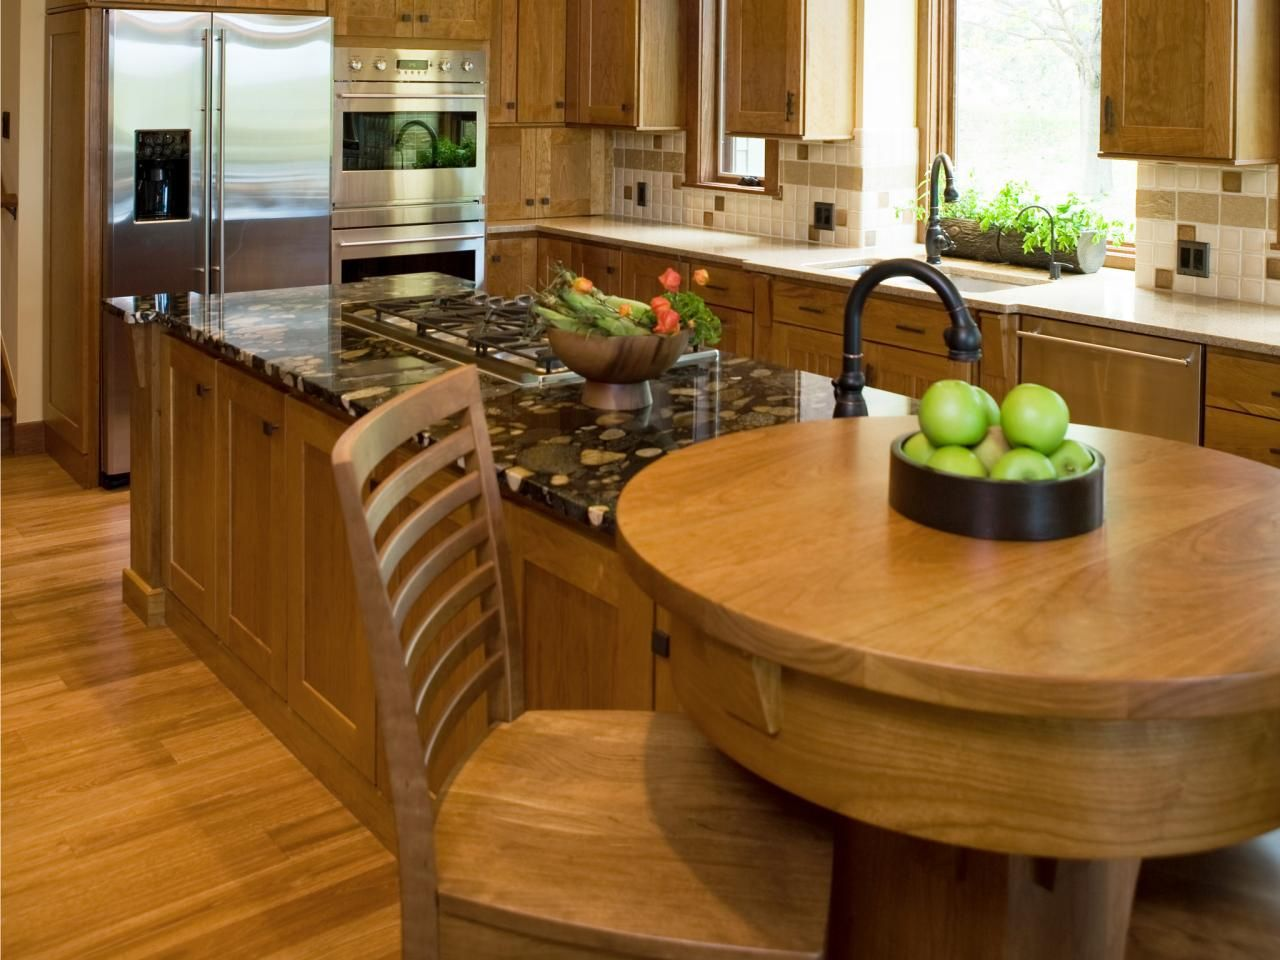 cheap kitchen islands with breakfast bar portable kitchen island breakfast bar cheap kitchen island ideas check more at ht custom 6465